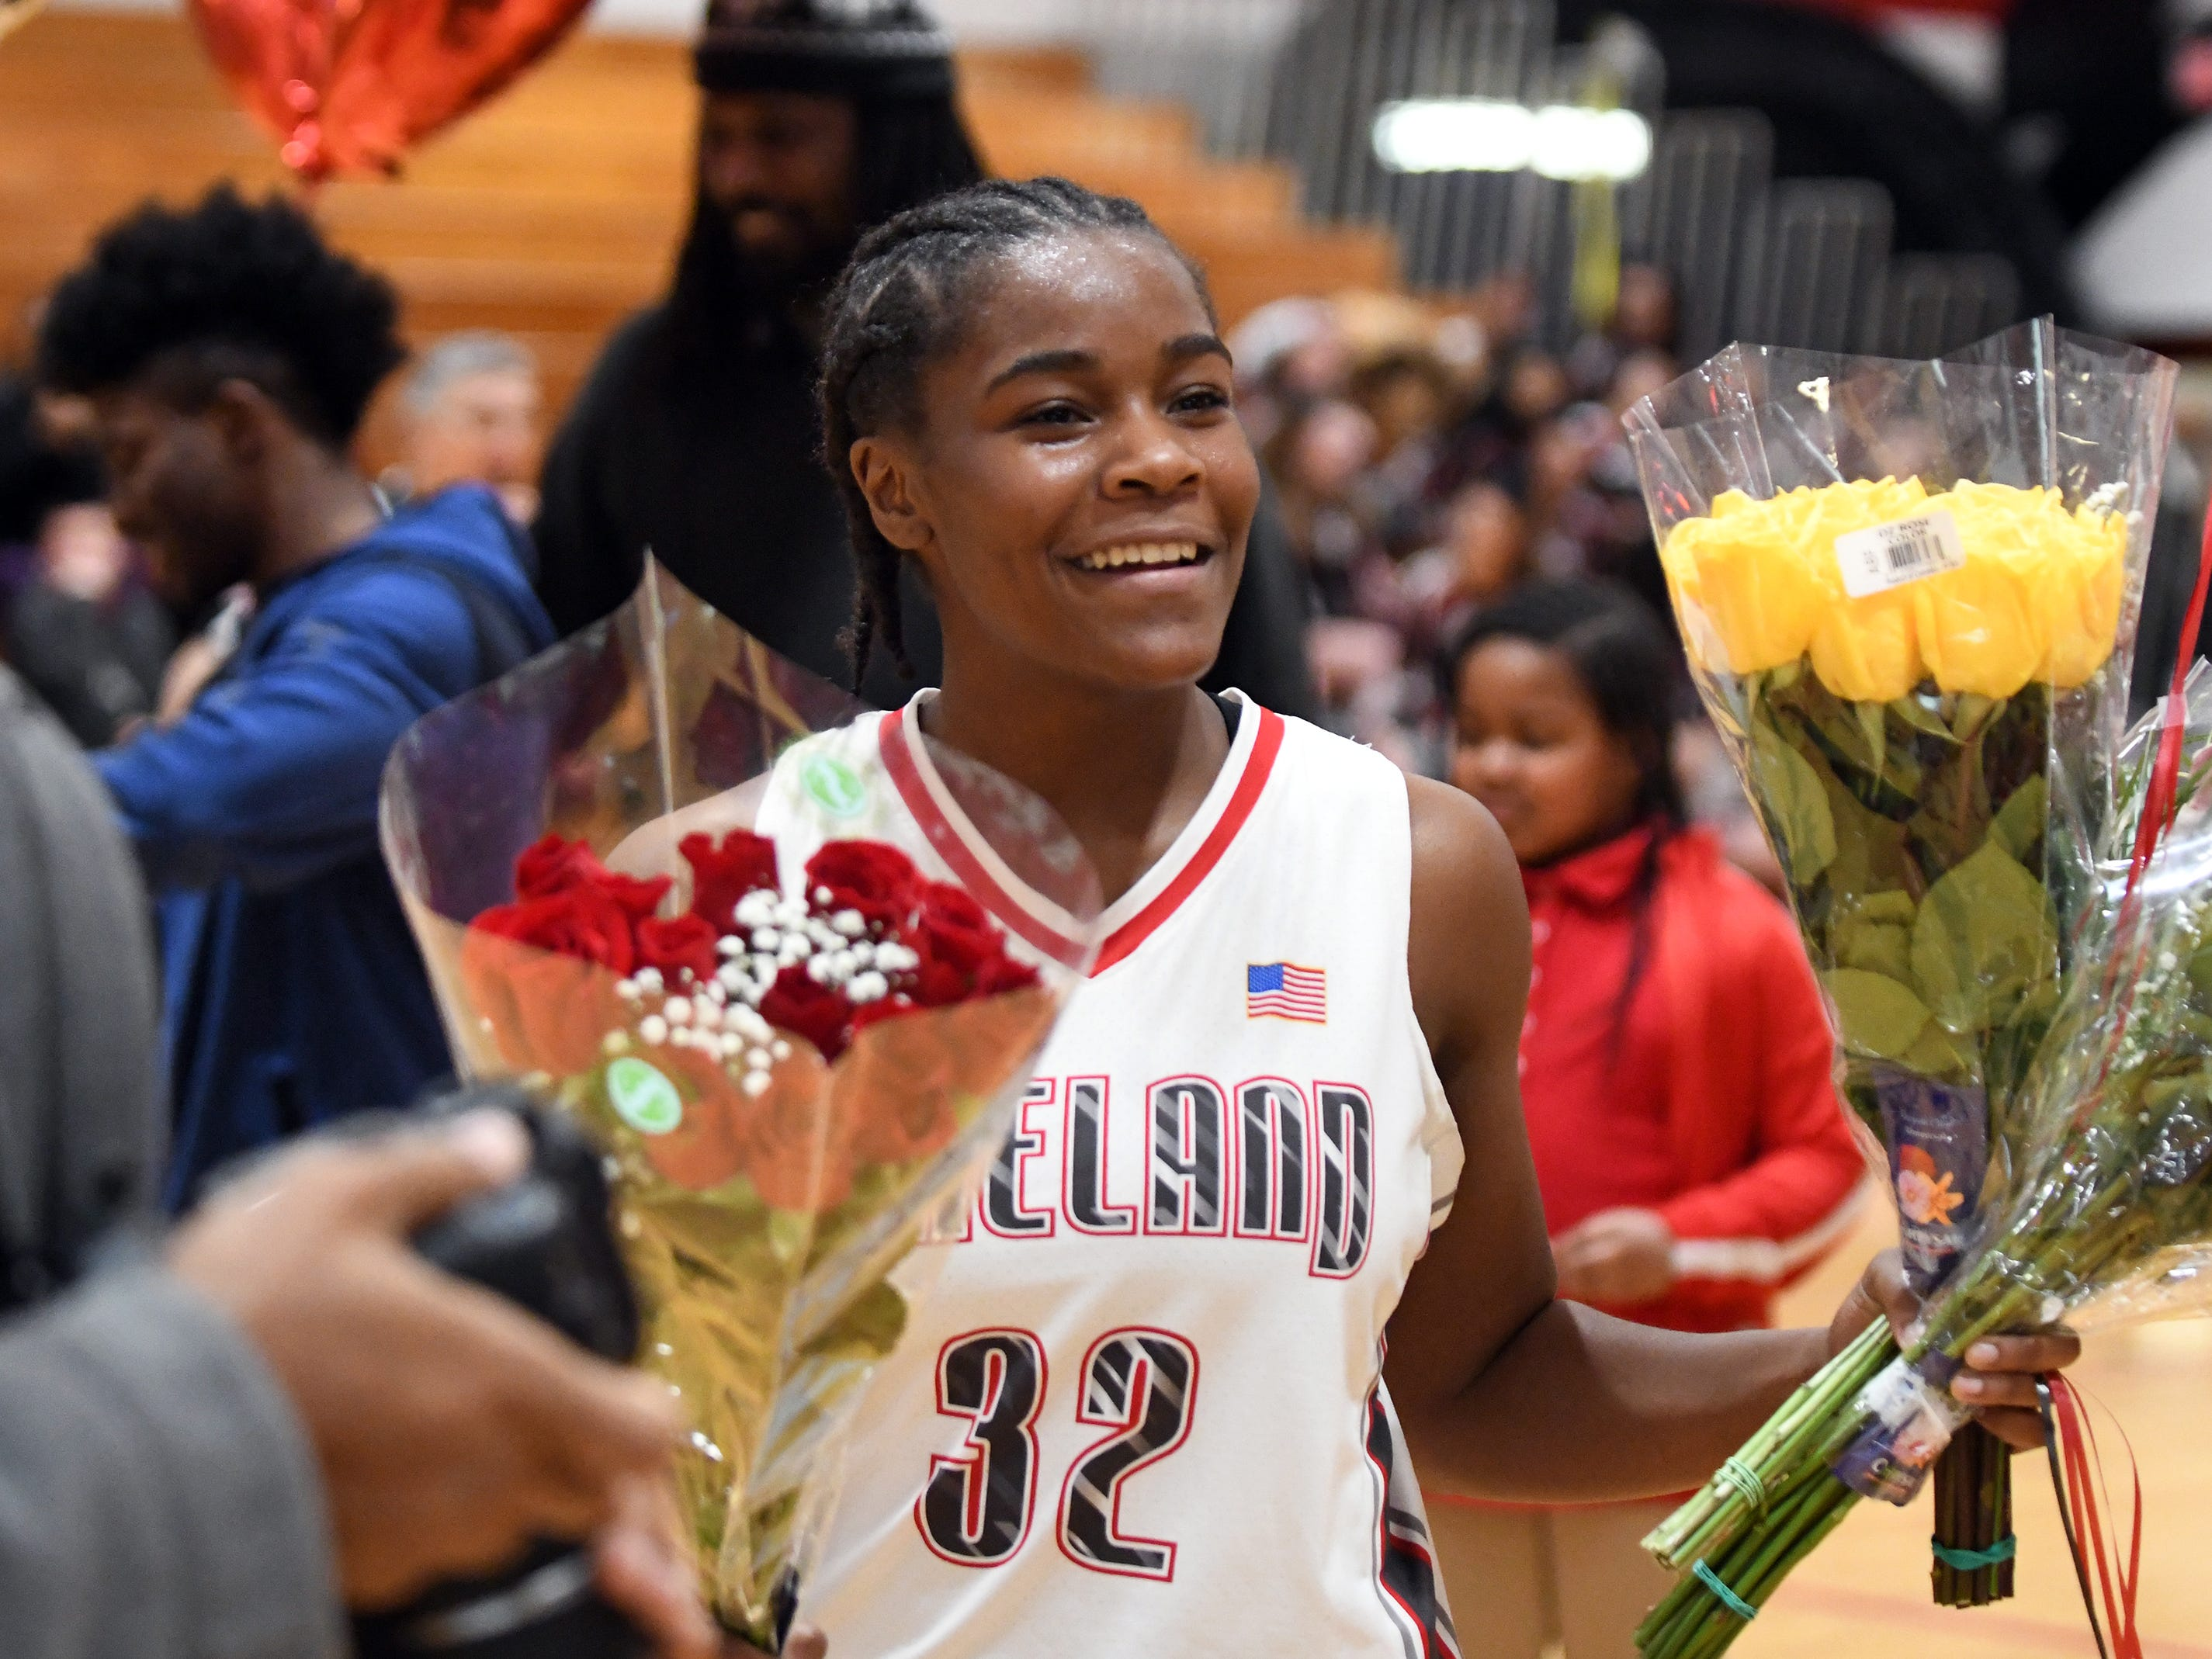 Vineland High School senior Briel Herbert celebrates her 1,000th career point during a game against Millville. The Fighting Clan defeated the visiting Thunderbolts 57-35 on Wednesday, Jan. 16, 2019.